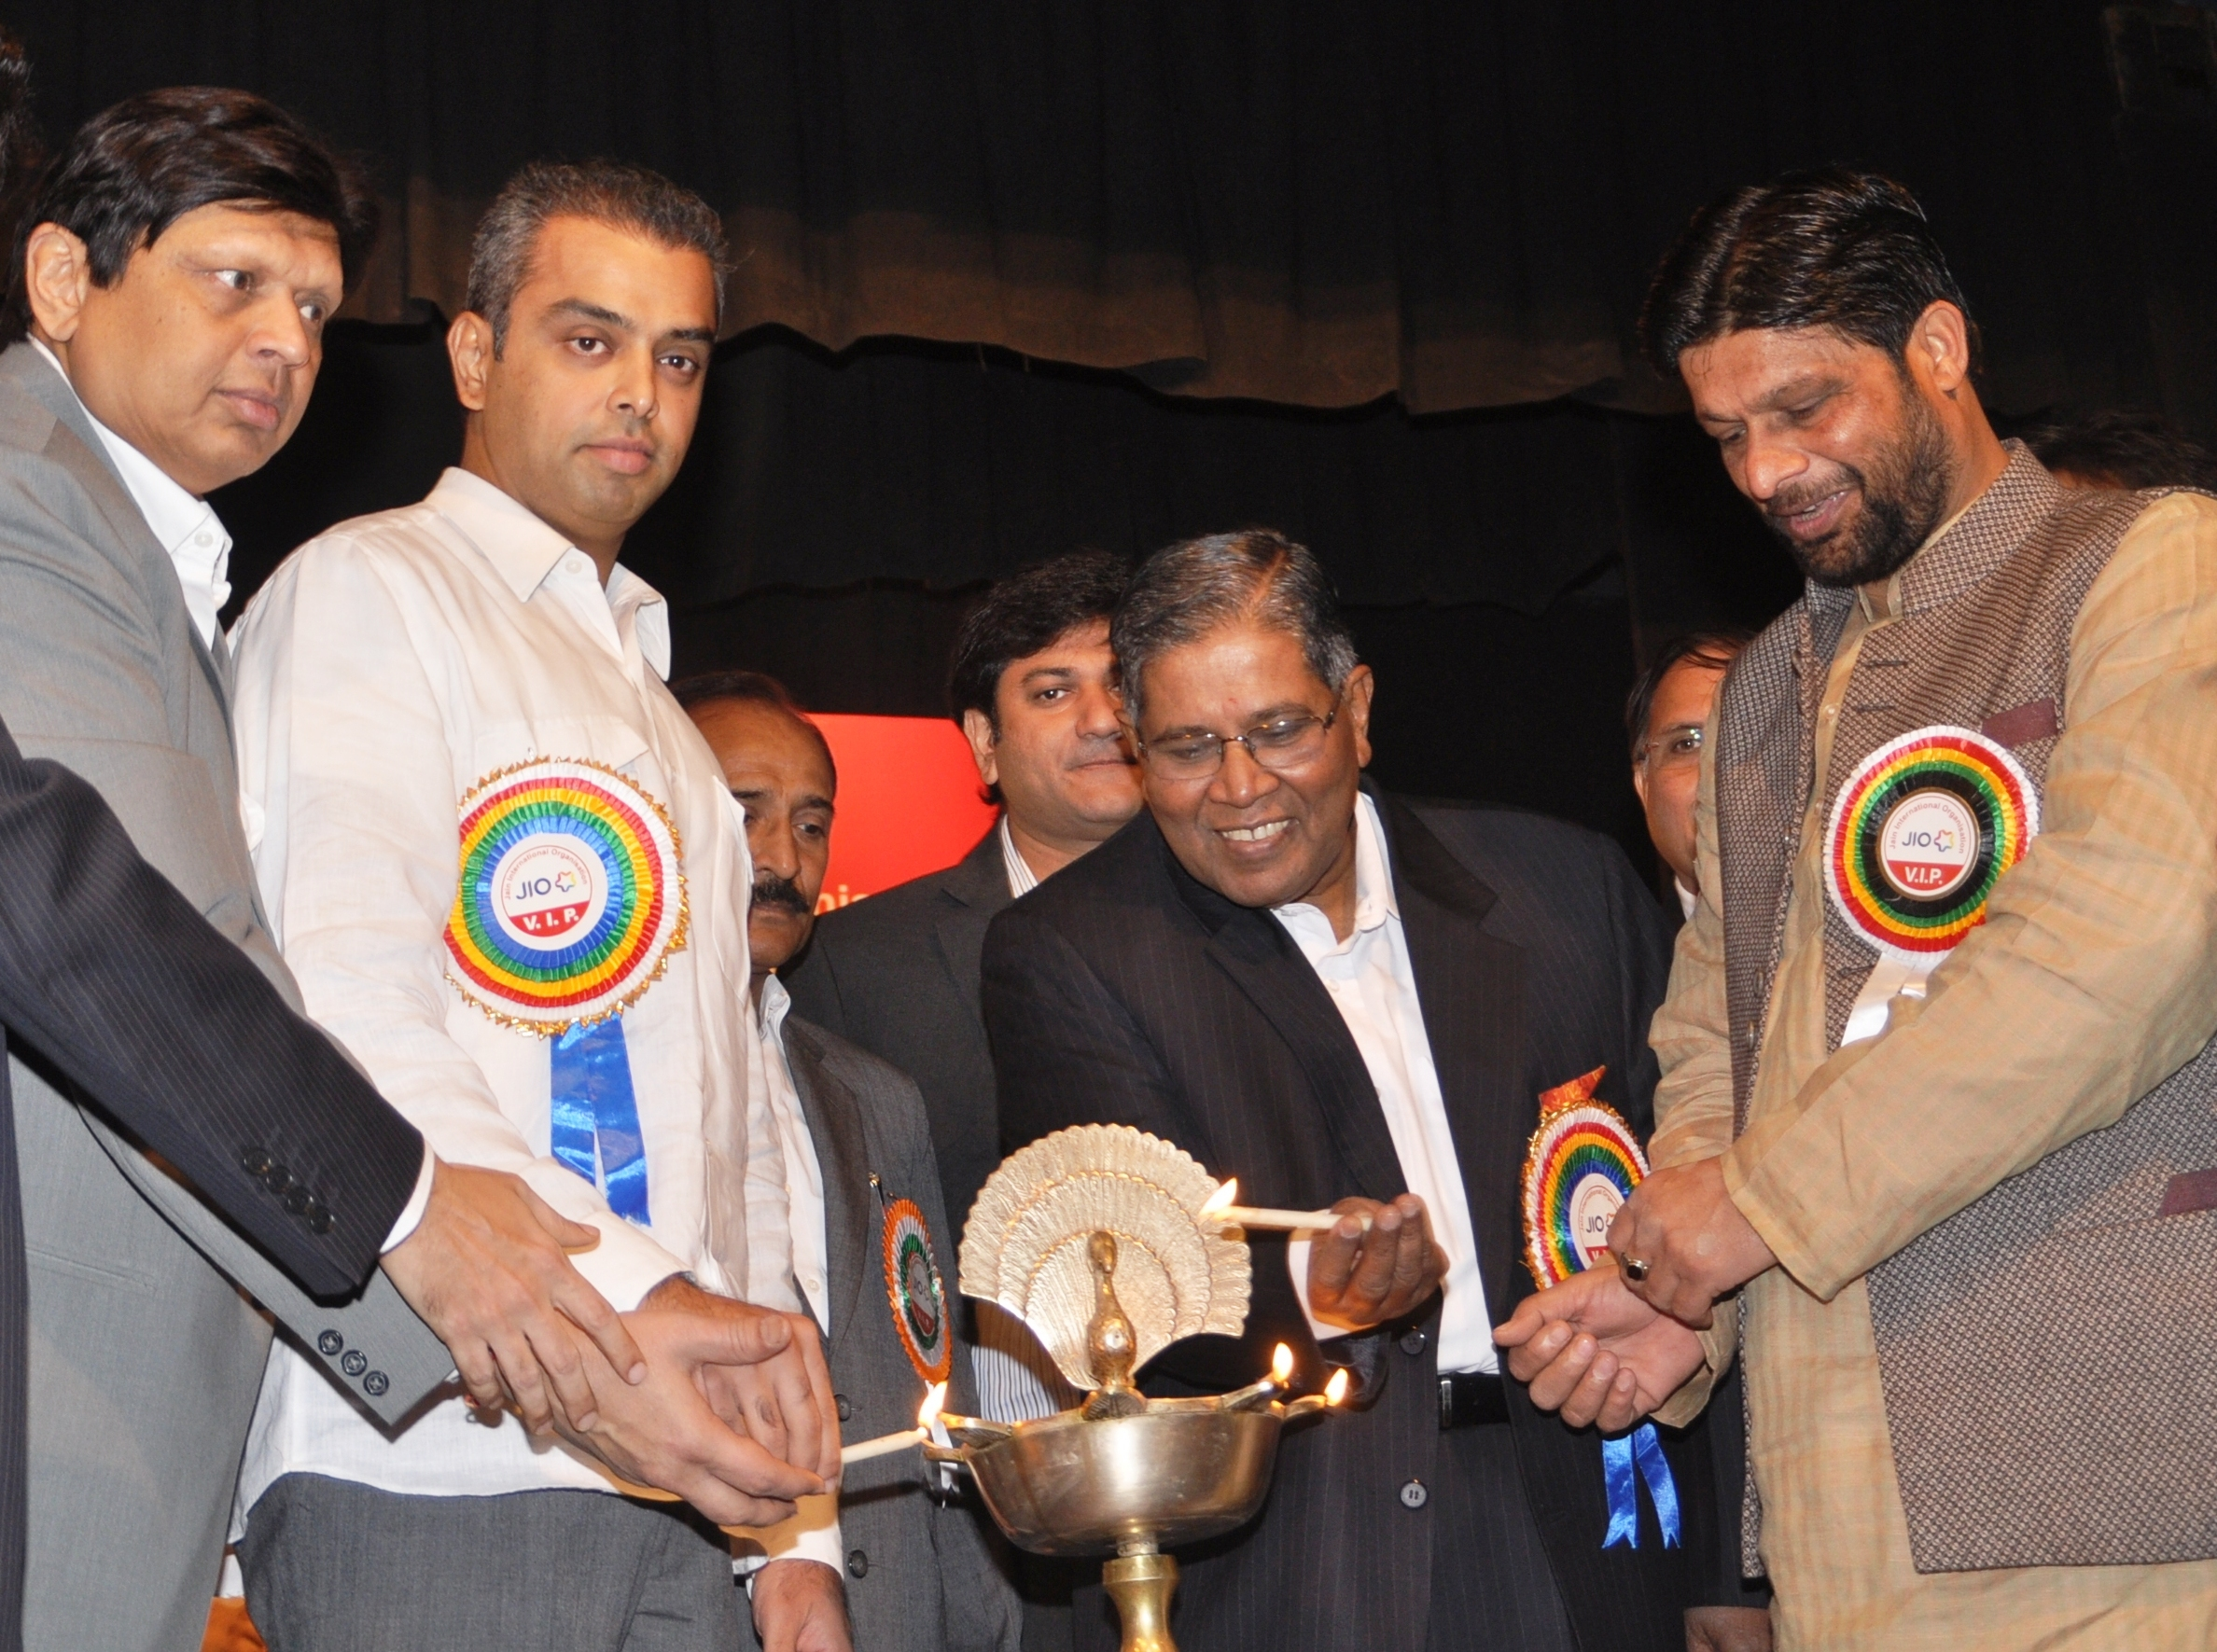 "Jain International Organisation (JIO) honoured 3 Central Government Ministers for their remarkable contribution in obtaining minority status for Jain community on 15th February 2014 at Mumbai. During lighting the lamp, Seen from L to R, Mr. Hemant Shah-Prominent Leader of JIO, Mr. Milind Deora- Central State Minister, Mr. K. Rahman Khan- Central Minister of Minority & Mr. Pradeep Jain ""Aditya"" –Central Rural Development Minister."